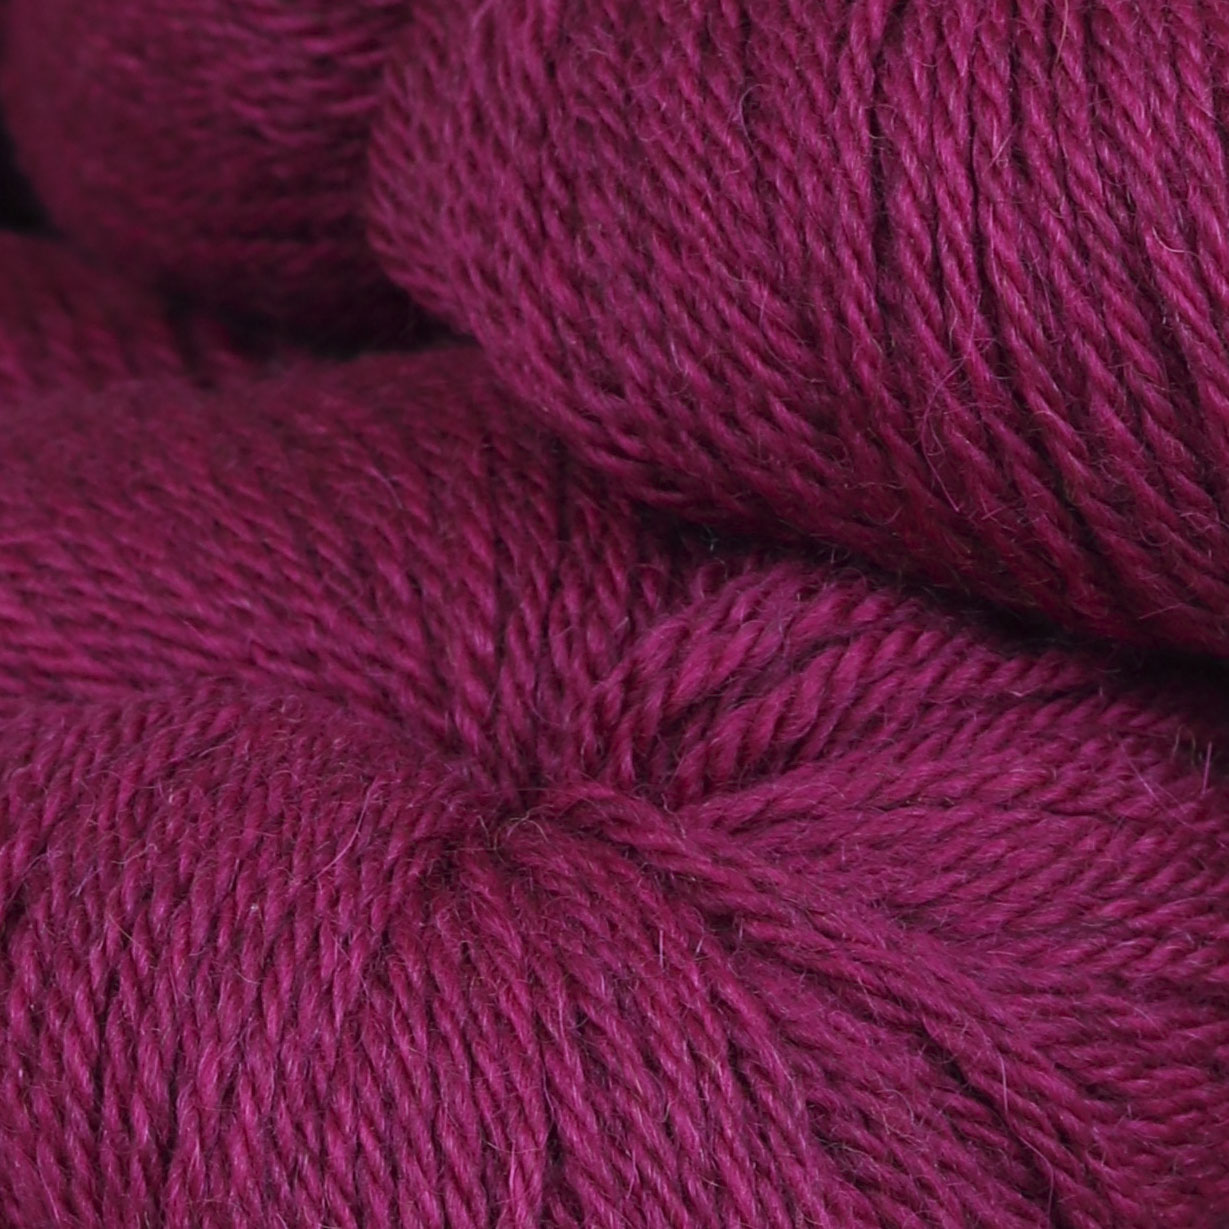 Cowberry swatch